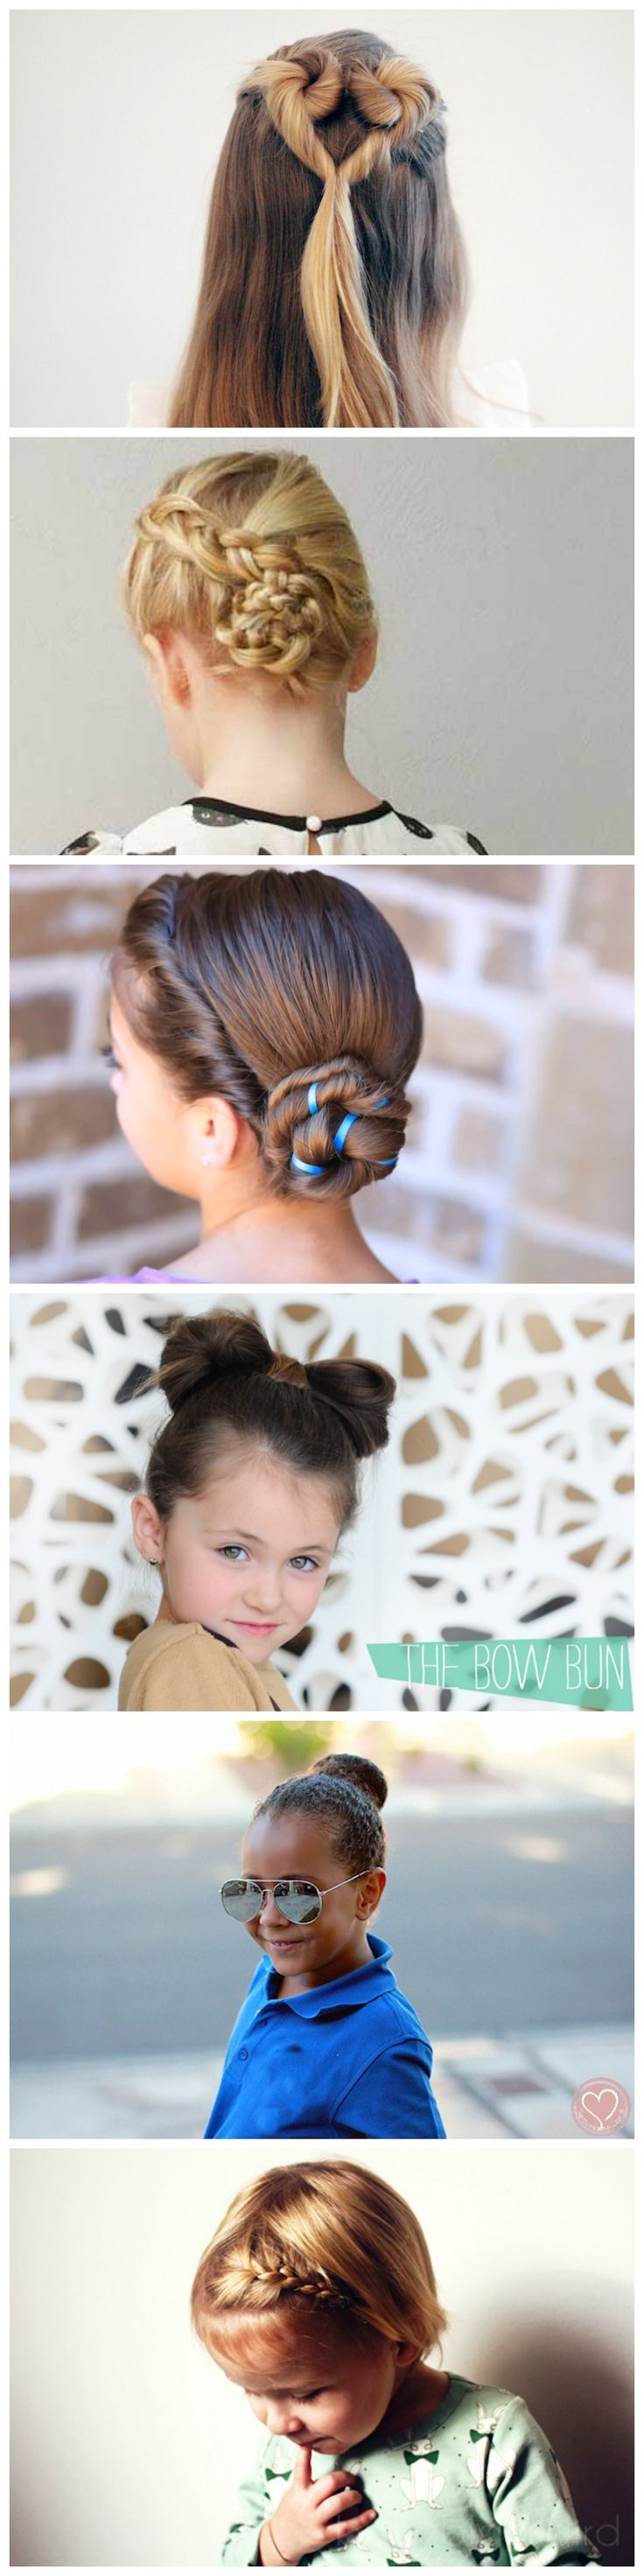 Best 25 Easy party hairstyles ideas on Pinterest